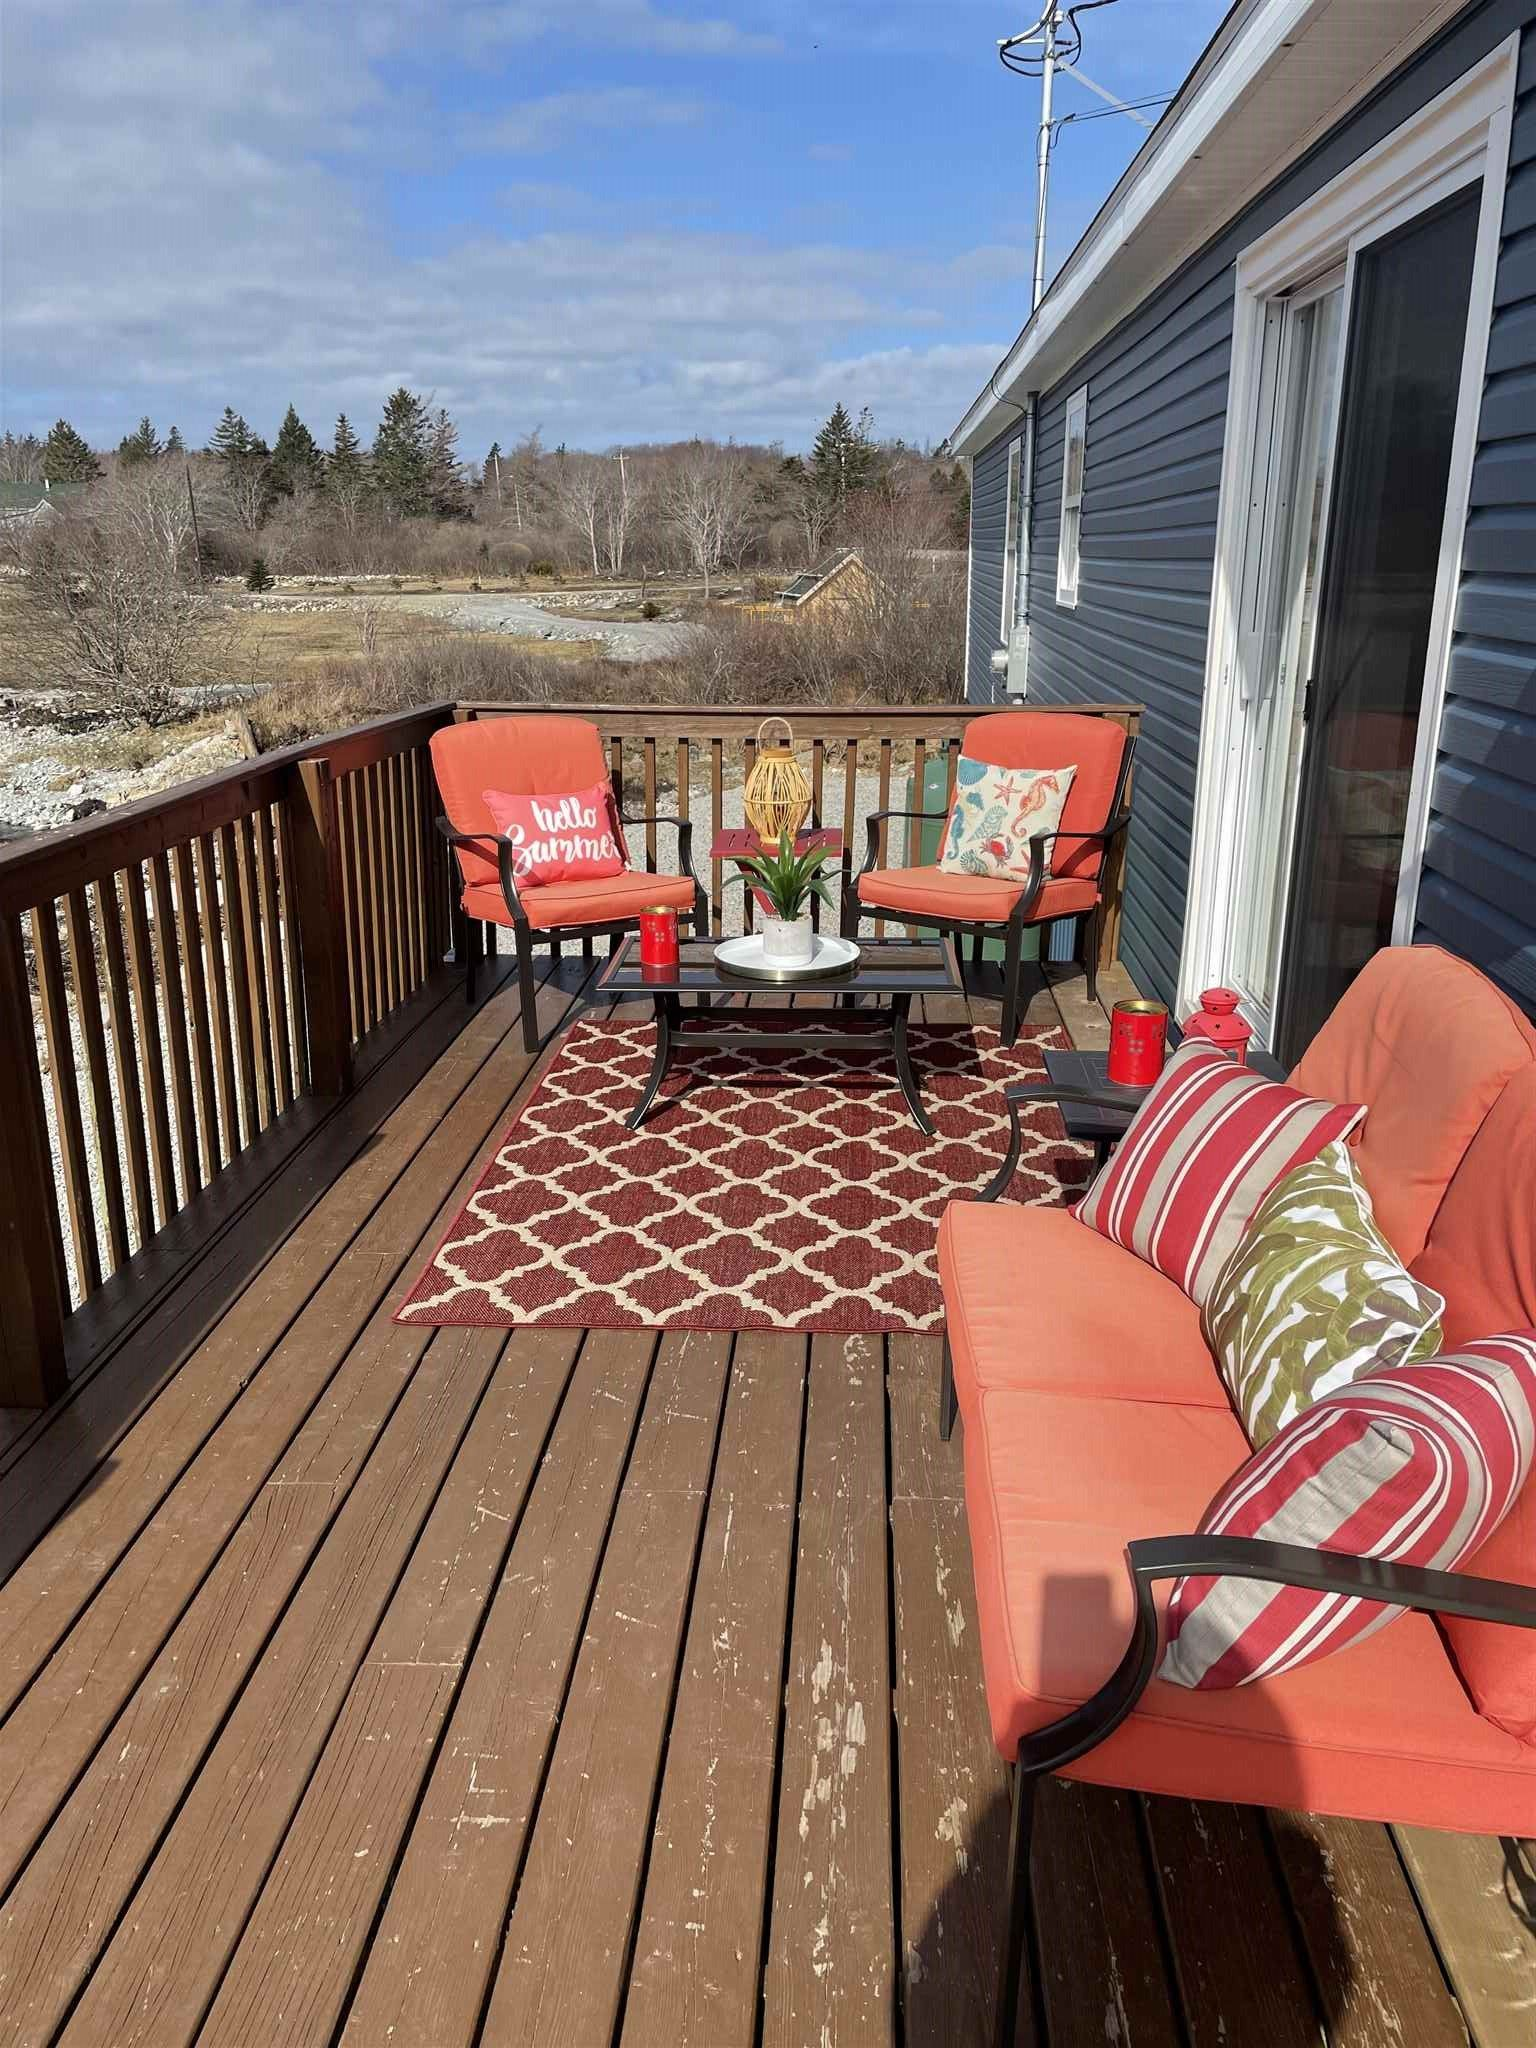 Main Photo: 2722 Sandy Point Road in Sandy Point: 407-Shelburne County Residential for sale (South Shore)  : MLS®# 202105908